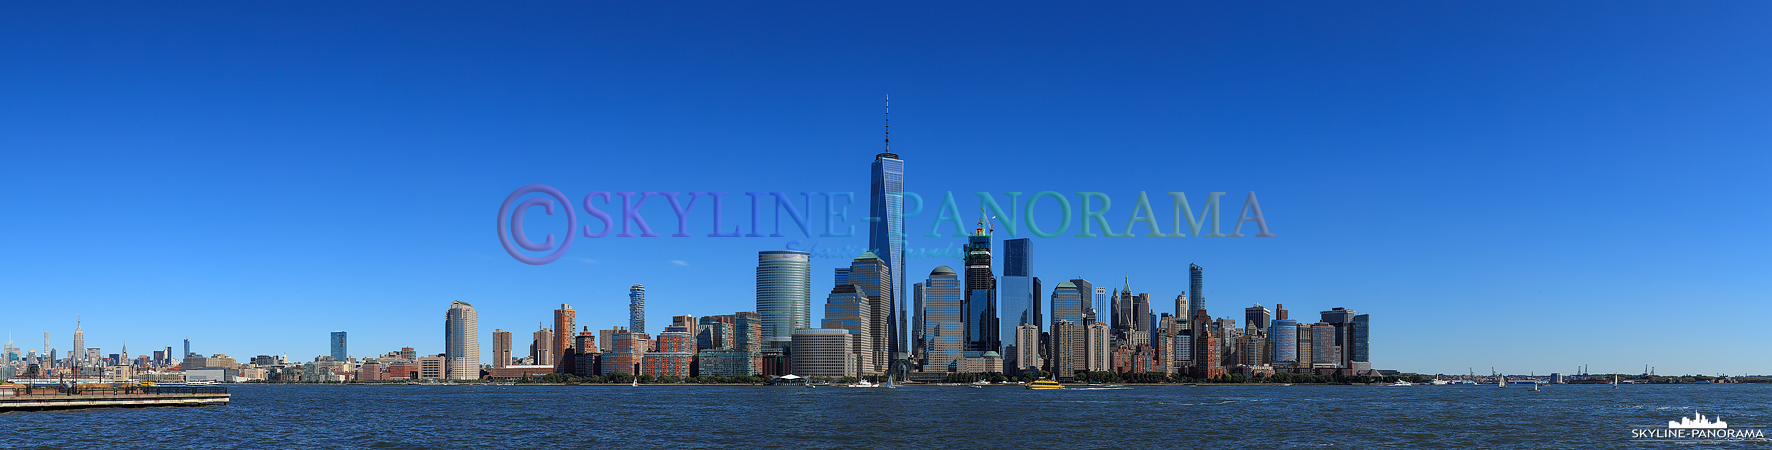 New York City - Die Skyline der Weltmetropole New York City mit dem neu erbauten One World Trade Center im Zentrum.